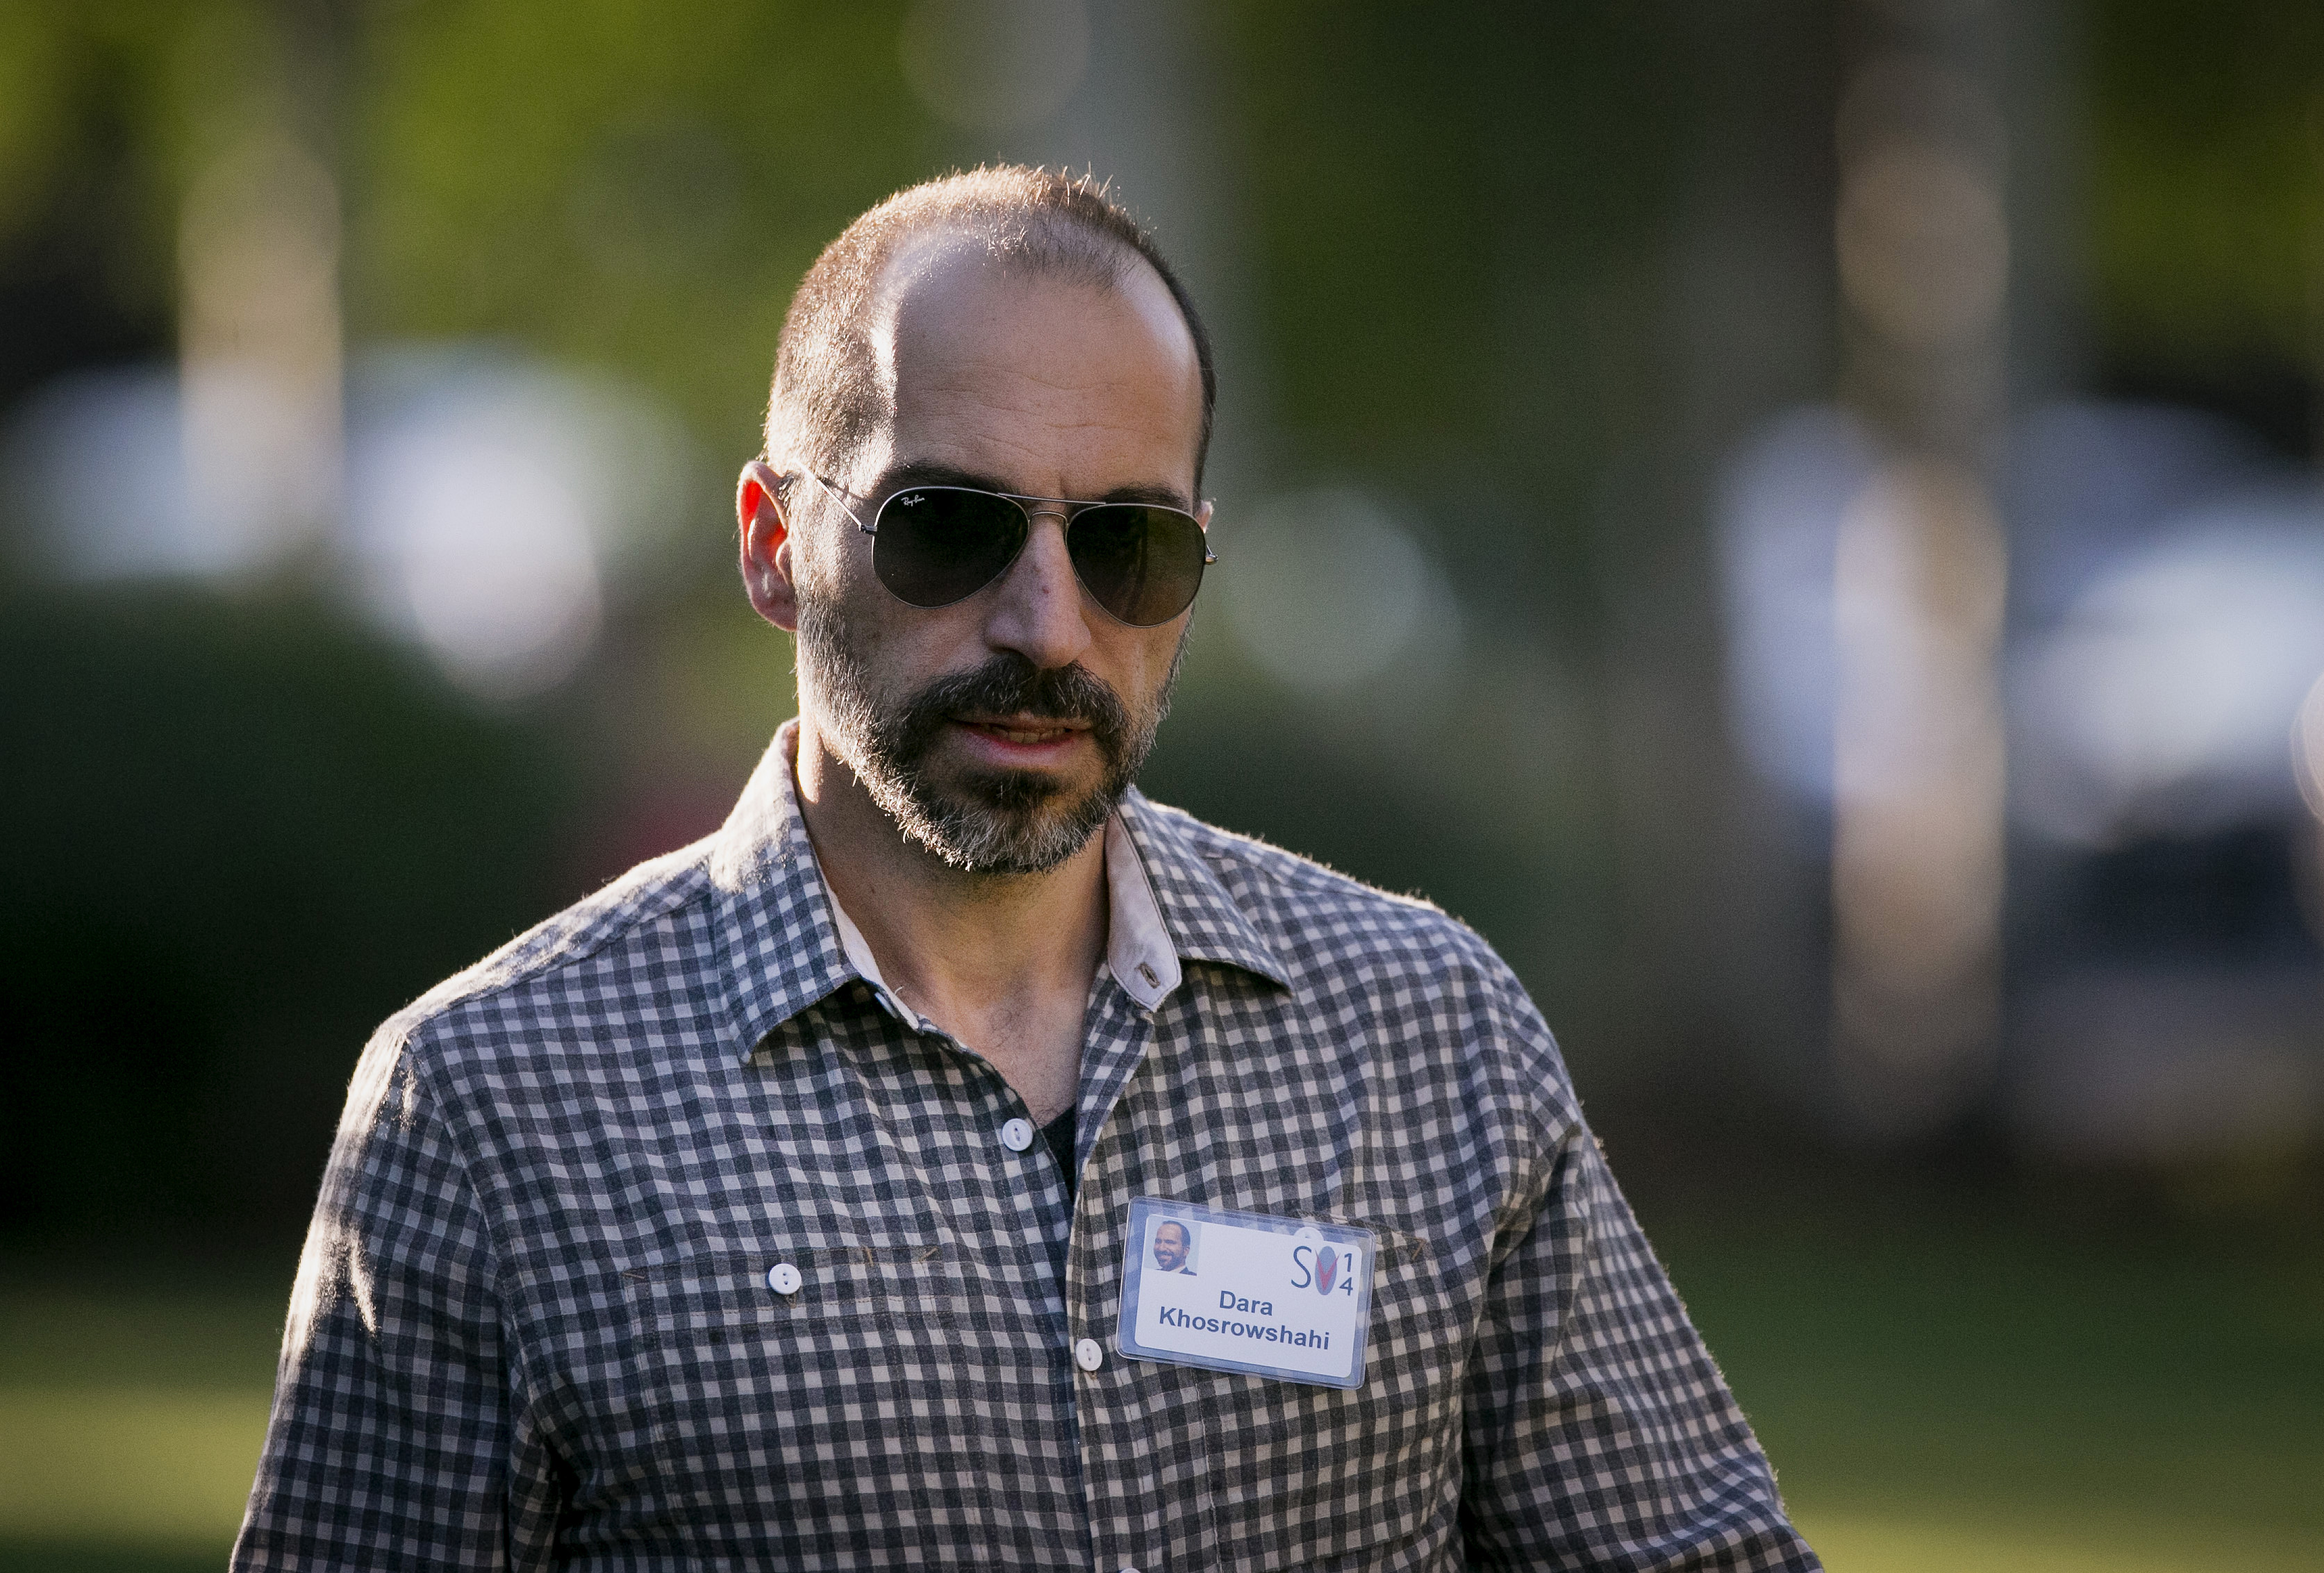 Dara Khosrowshahi arrives to a morning session at the Sun Valley Lodge during the Allen & Co. Media and Technology Conference in Sun Valley, Idaho, U.S., on Wednesday, July 9, 2014.